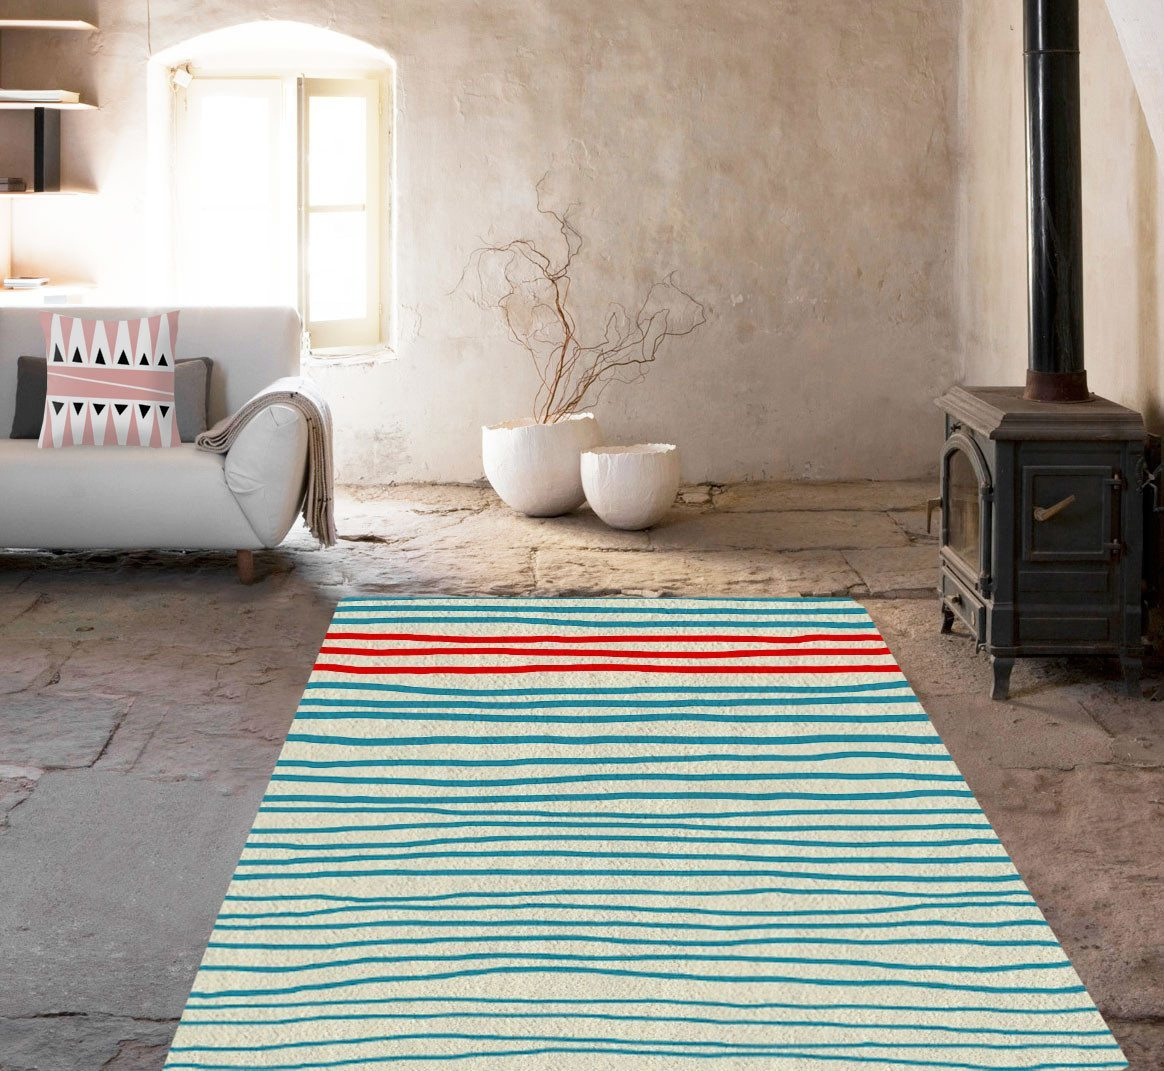 Blue Lines Rugs - Modern Area Rug - Dorm rugs - Affordable area rugs-Rugs-TheGretest